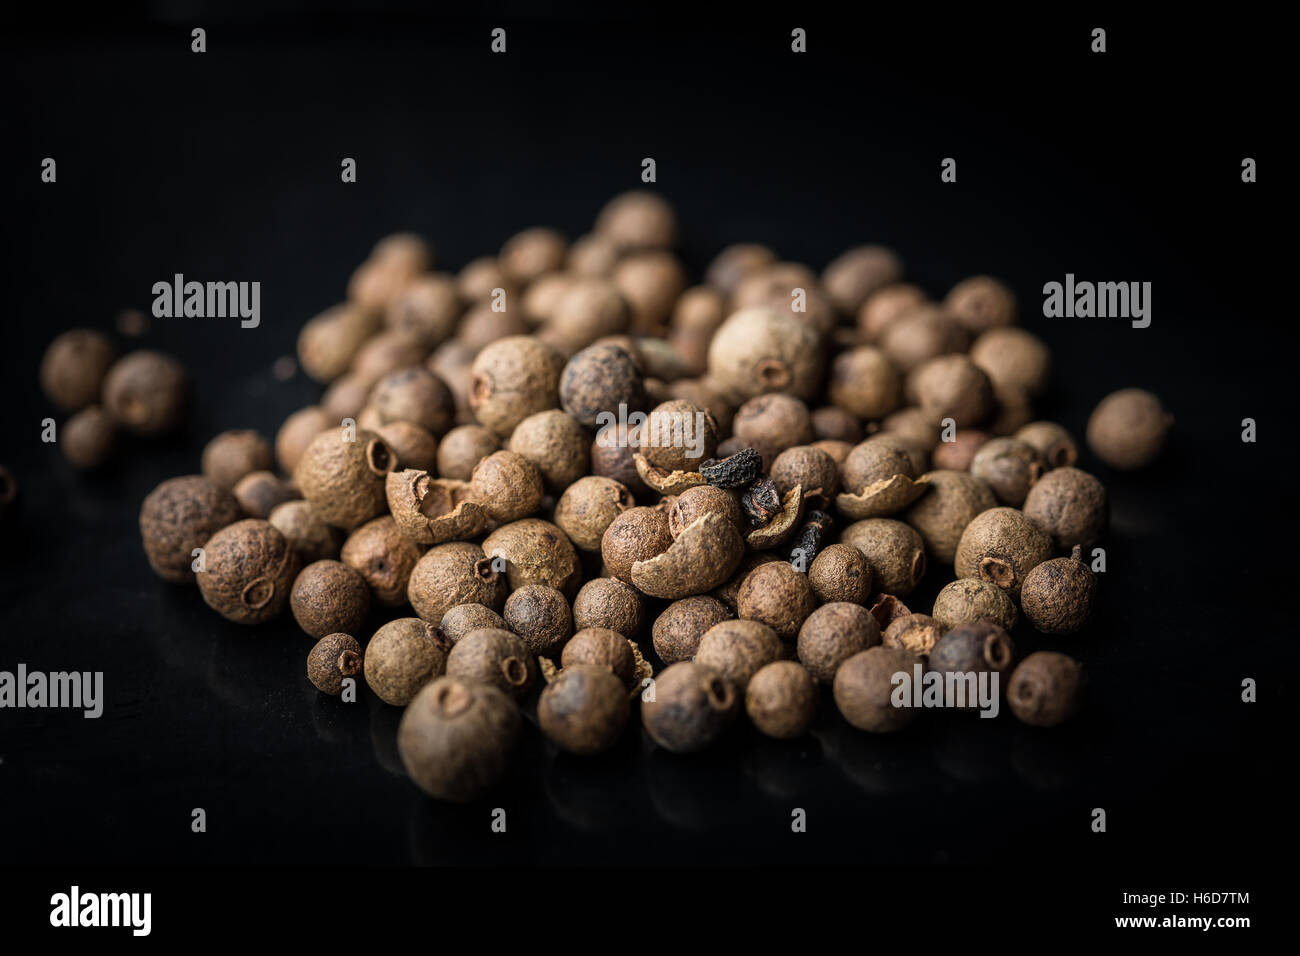 Pimento berries on black background - Stock Image